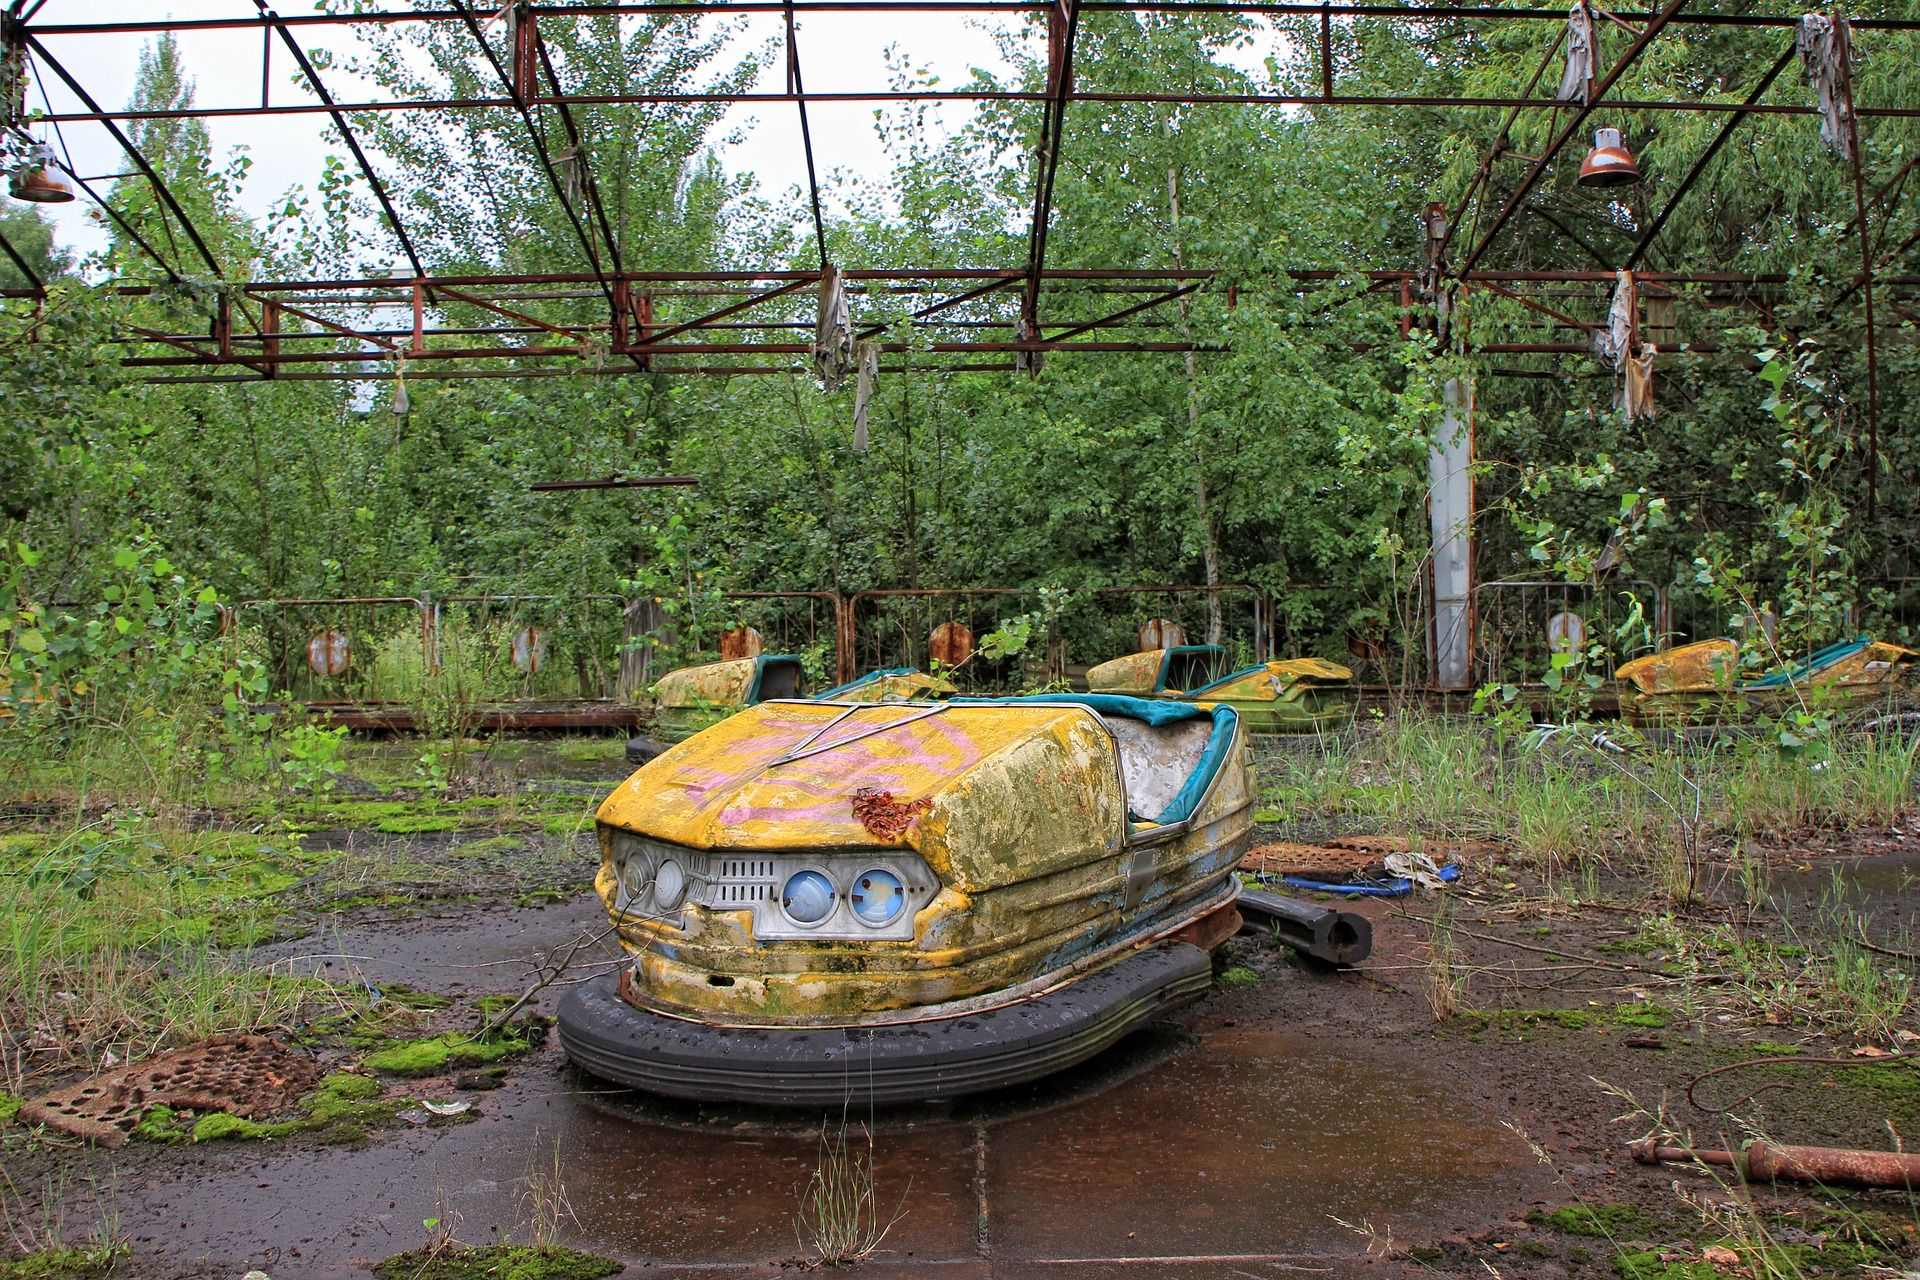 Top 10 Creepiest Abandoned Theme Parks In The World